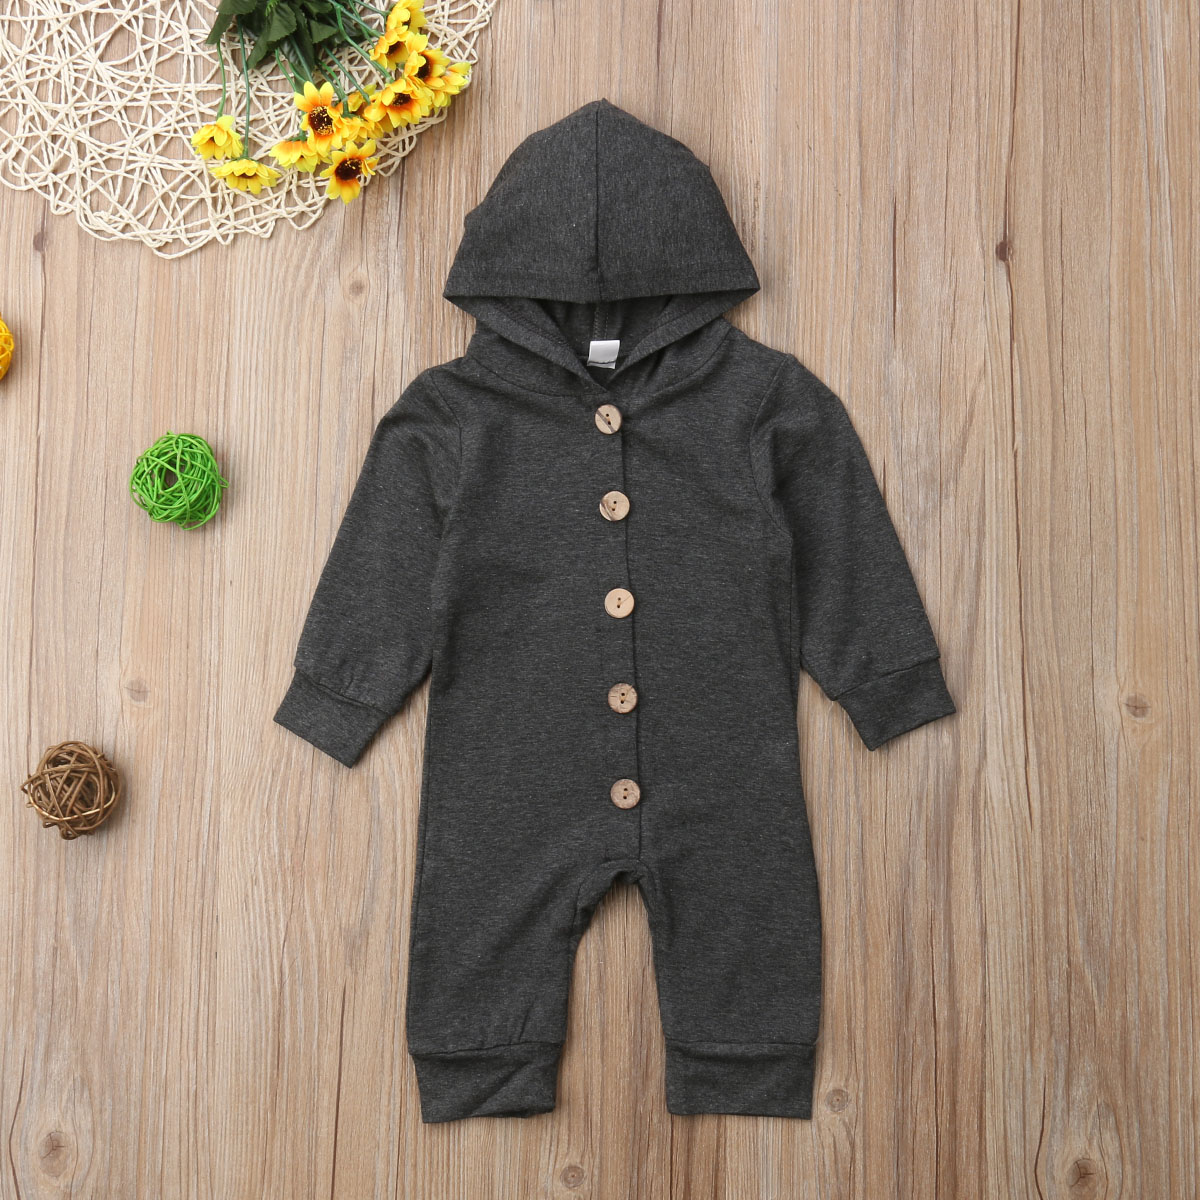 HTB1z3vEXdfvK1RjSspoq6zfNpXa6 2019 Children Spring Autumn Clothing Baby Kids Boys Girls Infant Hooded Solid Romper Jumpsuit Long Sleeve Clothes Outfits 0-24M